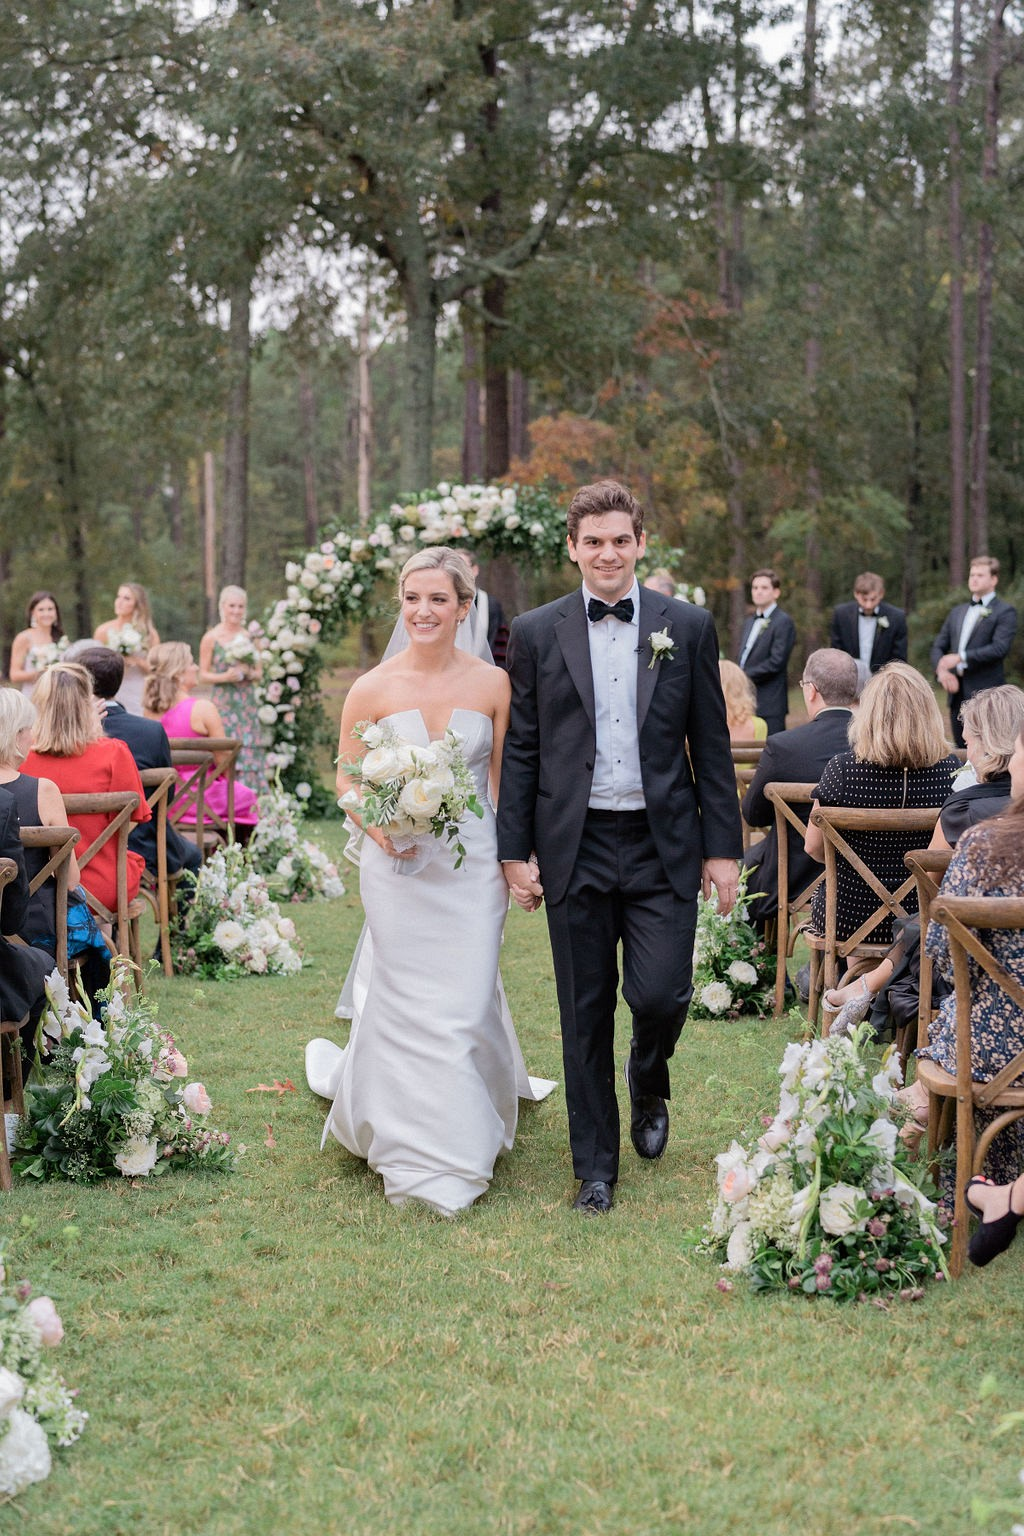 Outdoor Ceremony and Reception for this Postponed Wedding in South Carolina